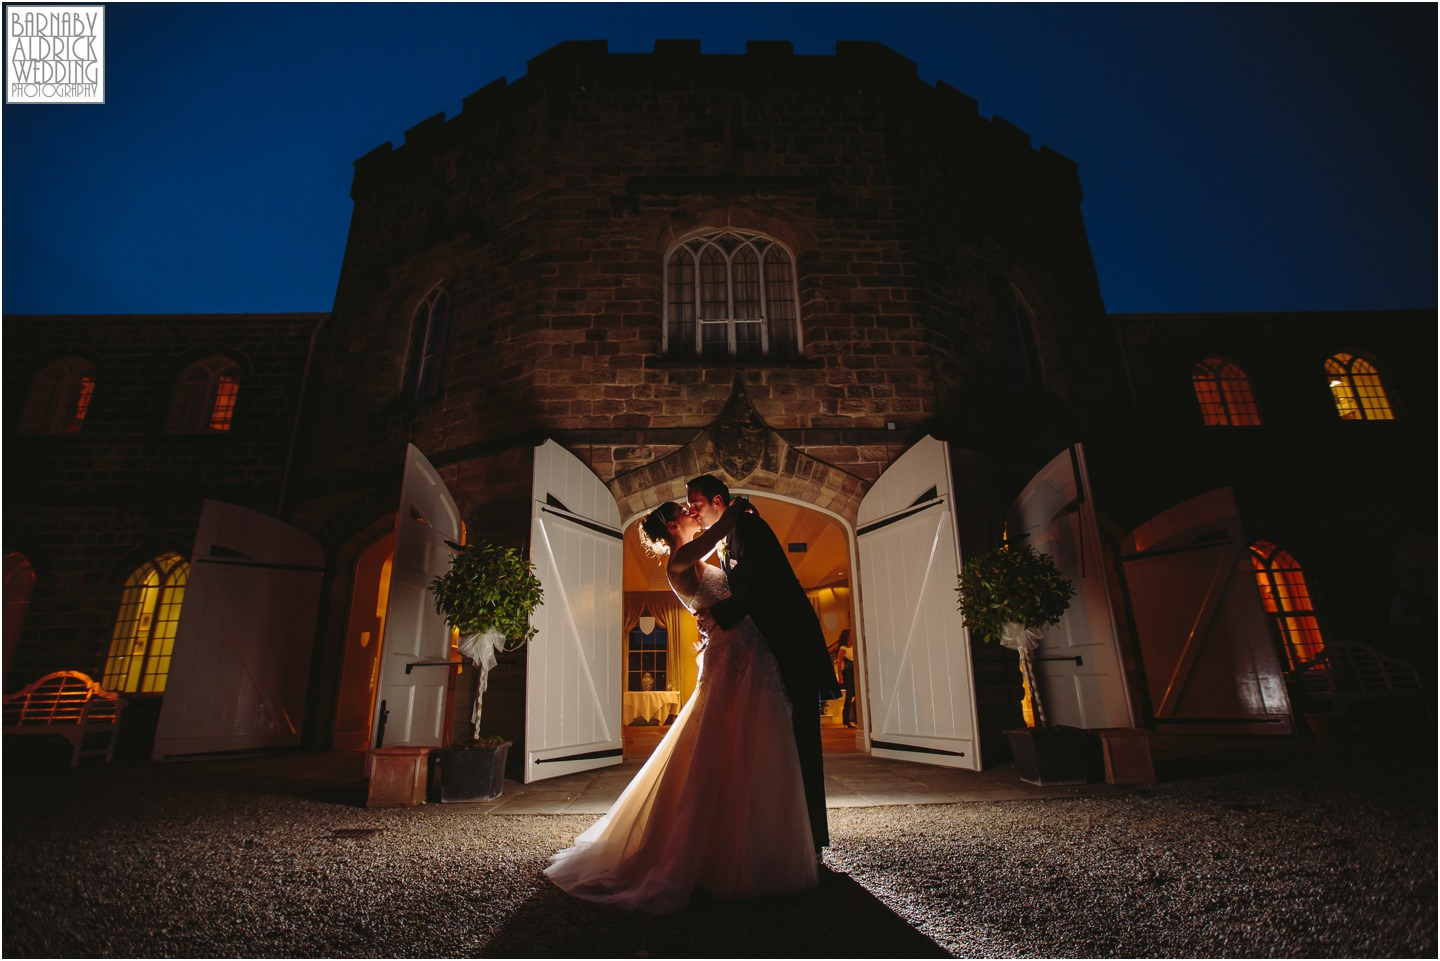 Ripley Castle evening wedding reception photograph